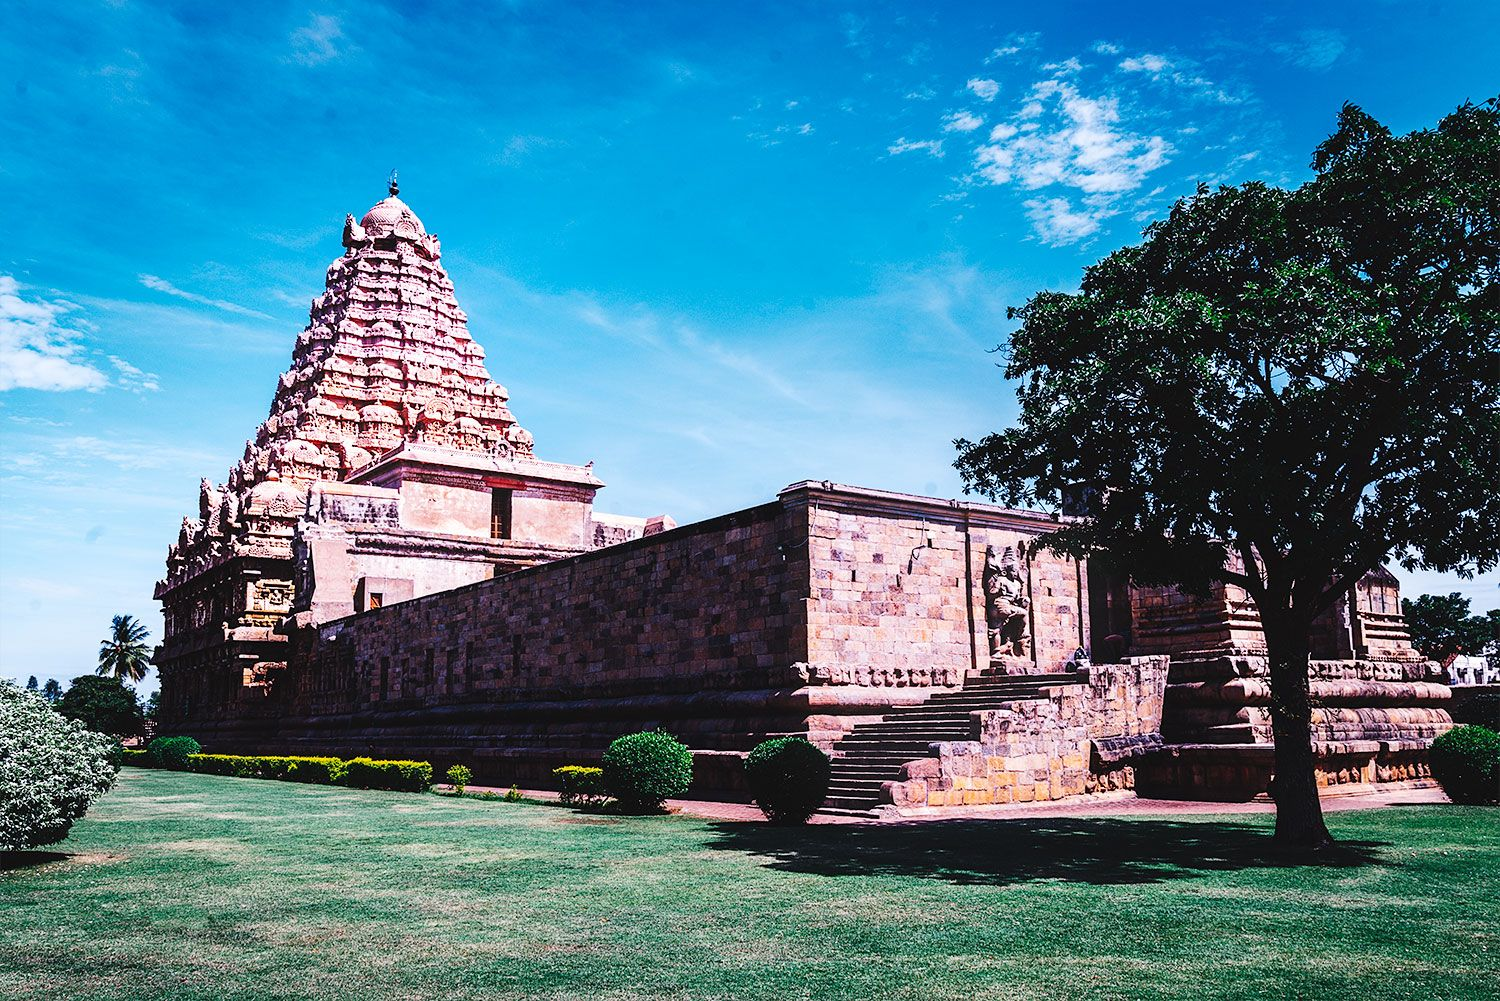 The Chola Temple at Gangaikonda Cholapuram